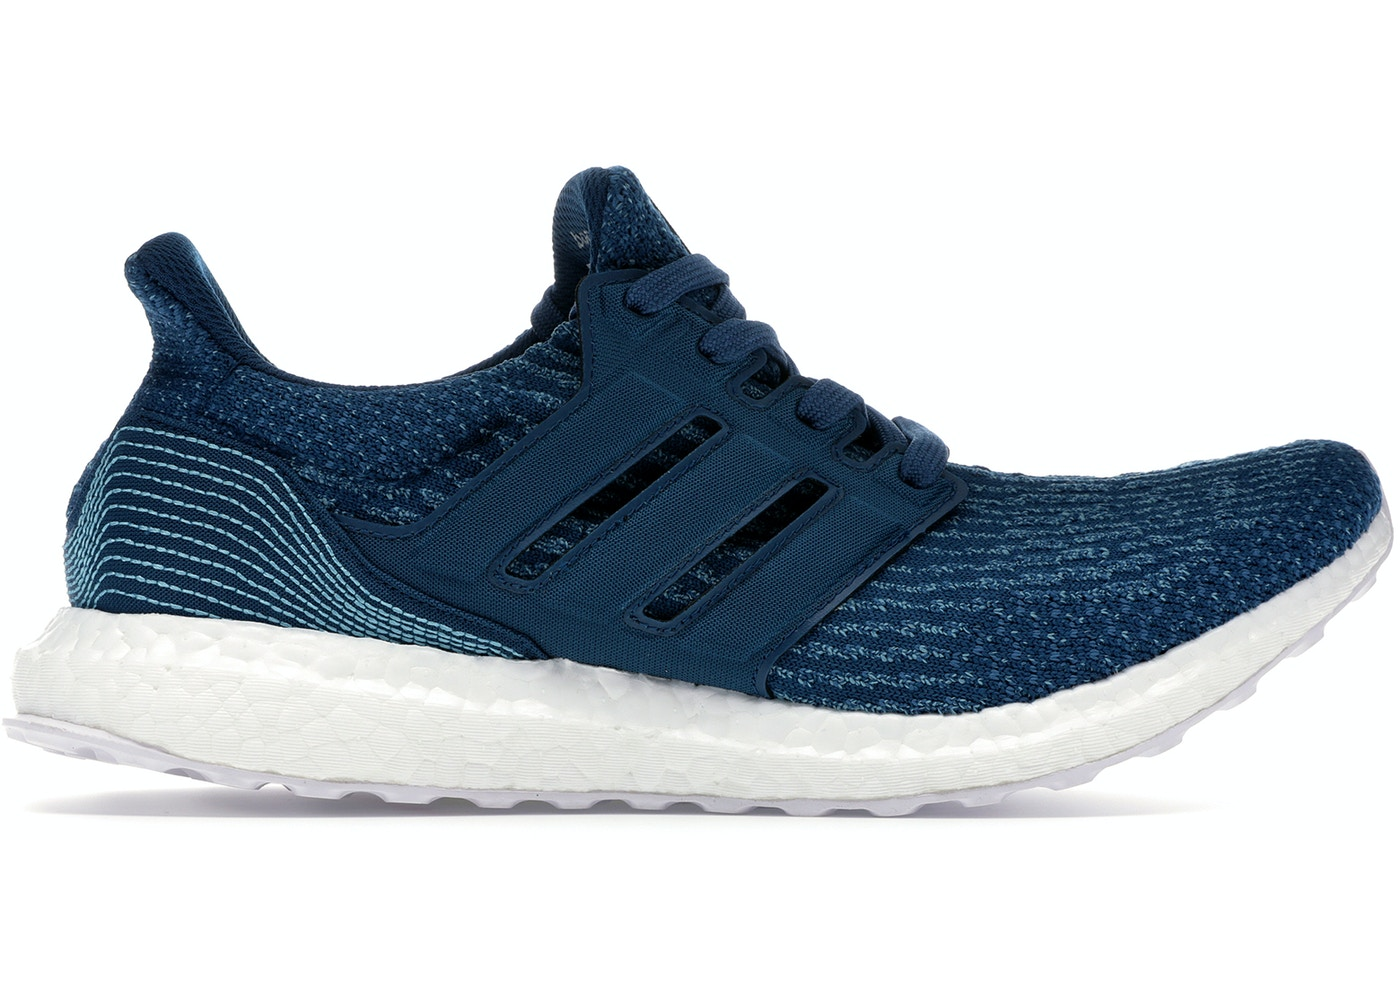 2dc8cfe7529 adidas Ultra Boost Shoes - New Lowest Asks